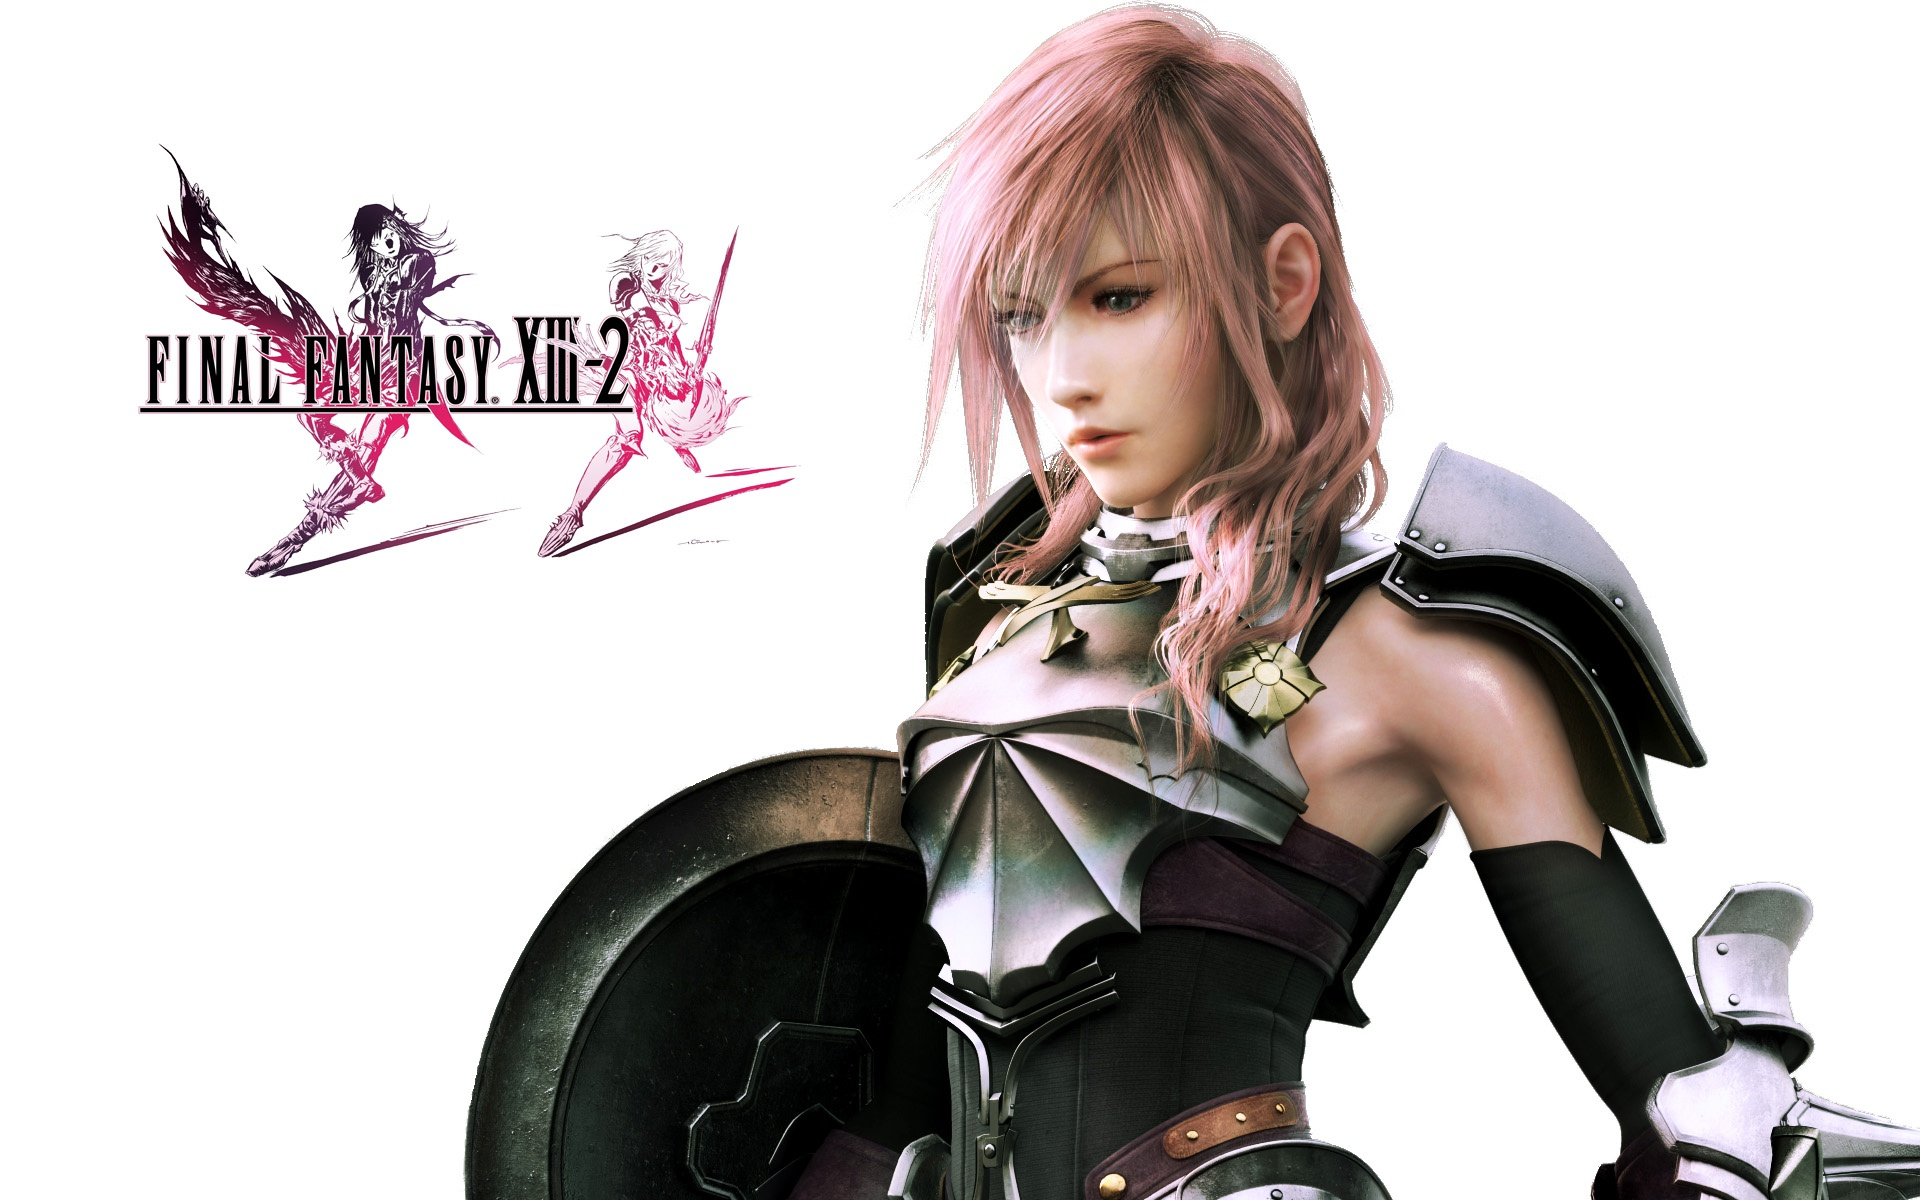 Wallpaper Girl In Final Fantasy Xiii 2 1920x1200 Hd Picture Image